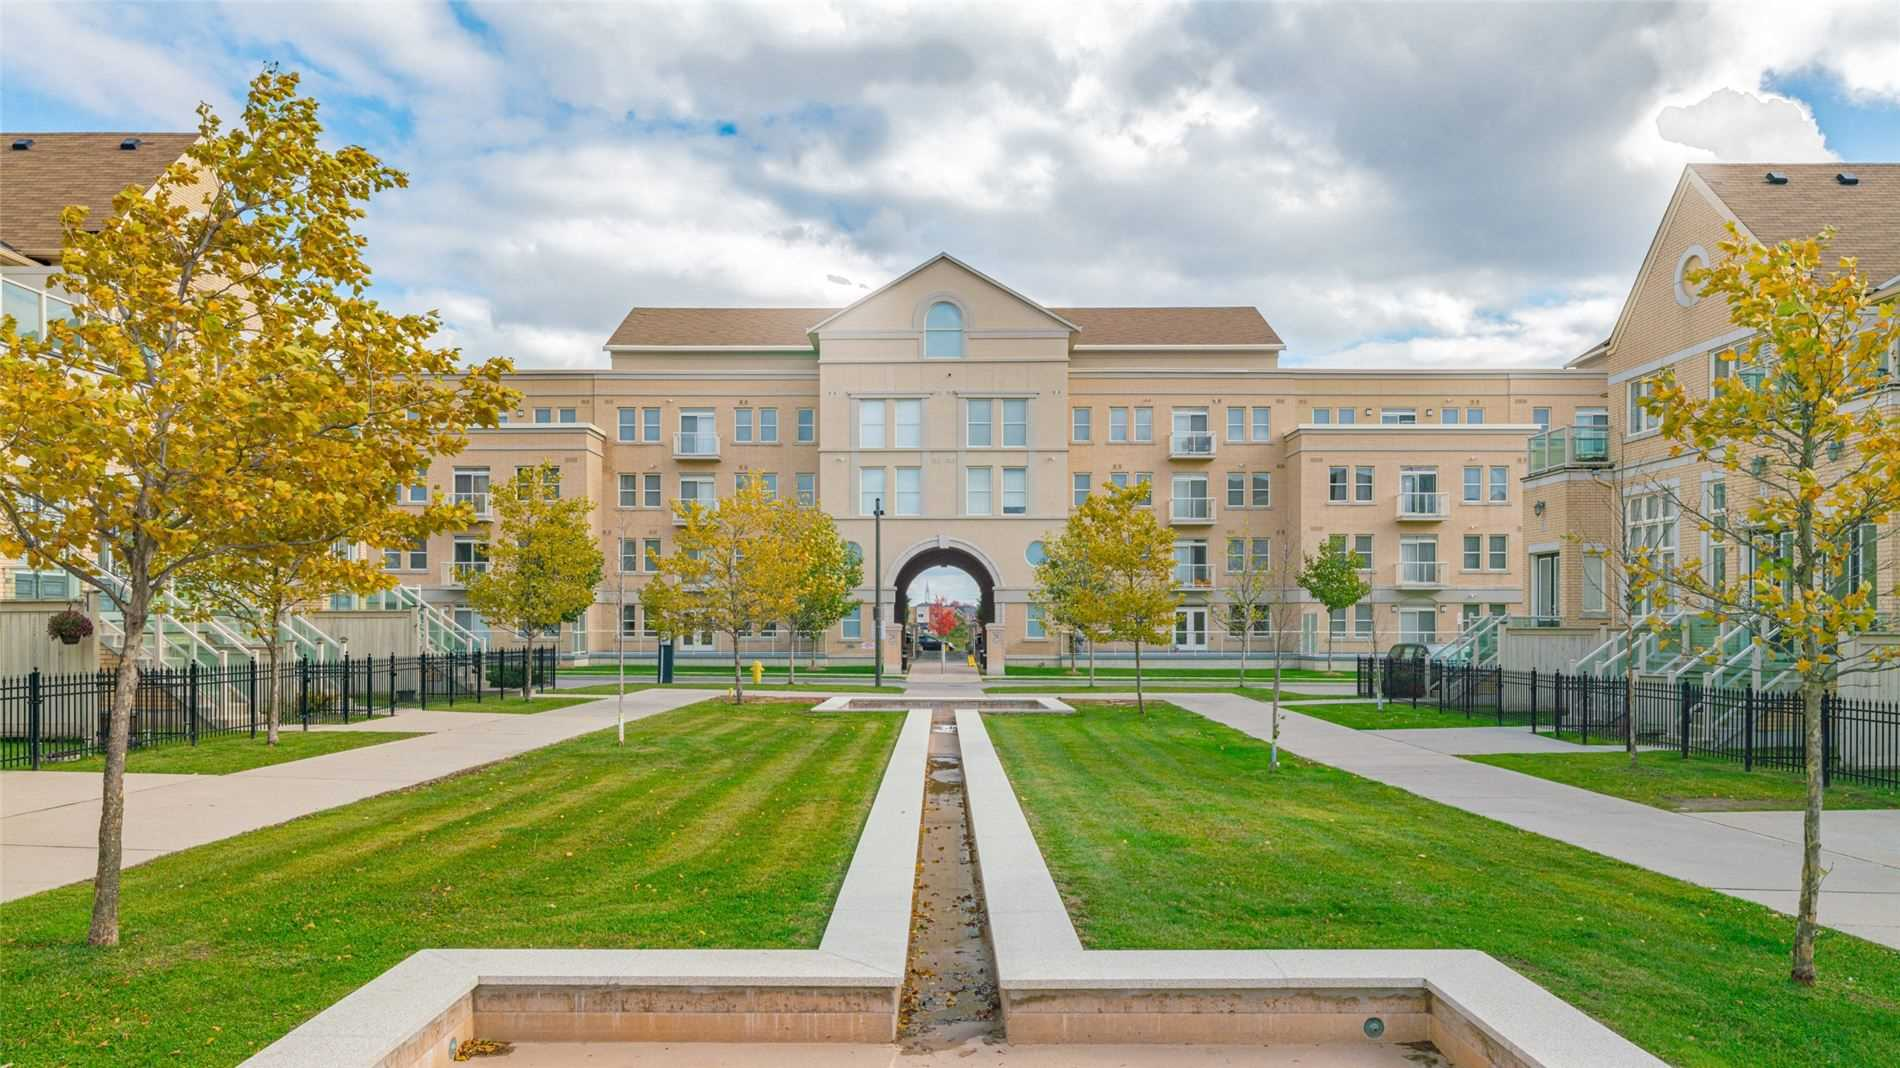 For Sale: 311 - 28 Prince Regent Street, Markham, ON | 3 Bed, 2 Bath Condo for $599999.00. See 20 photos!